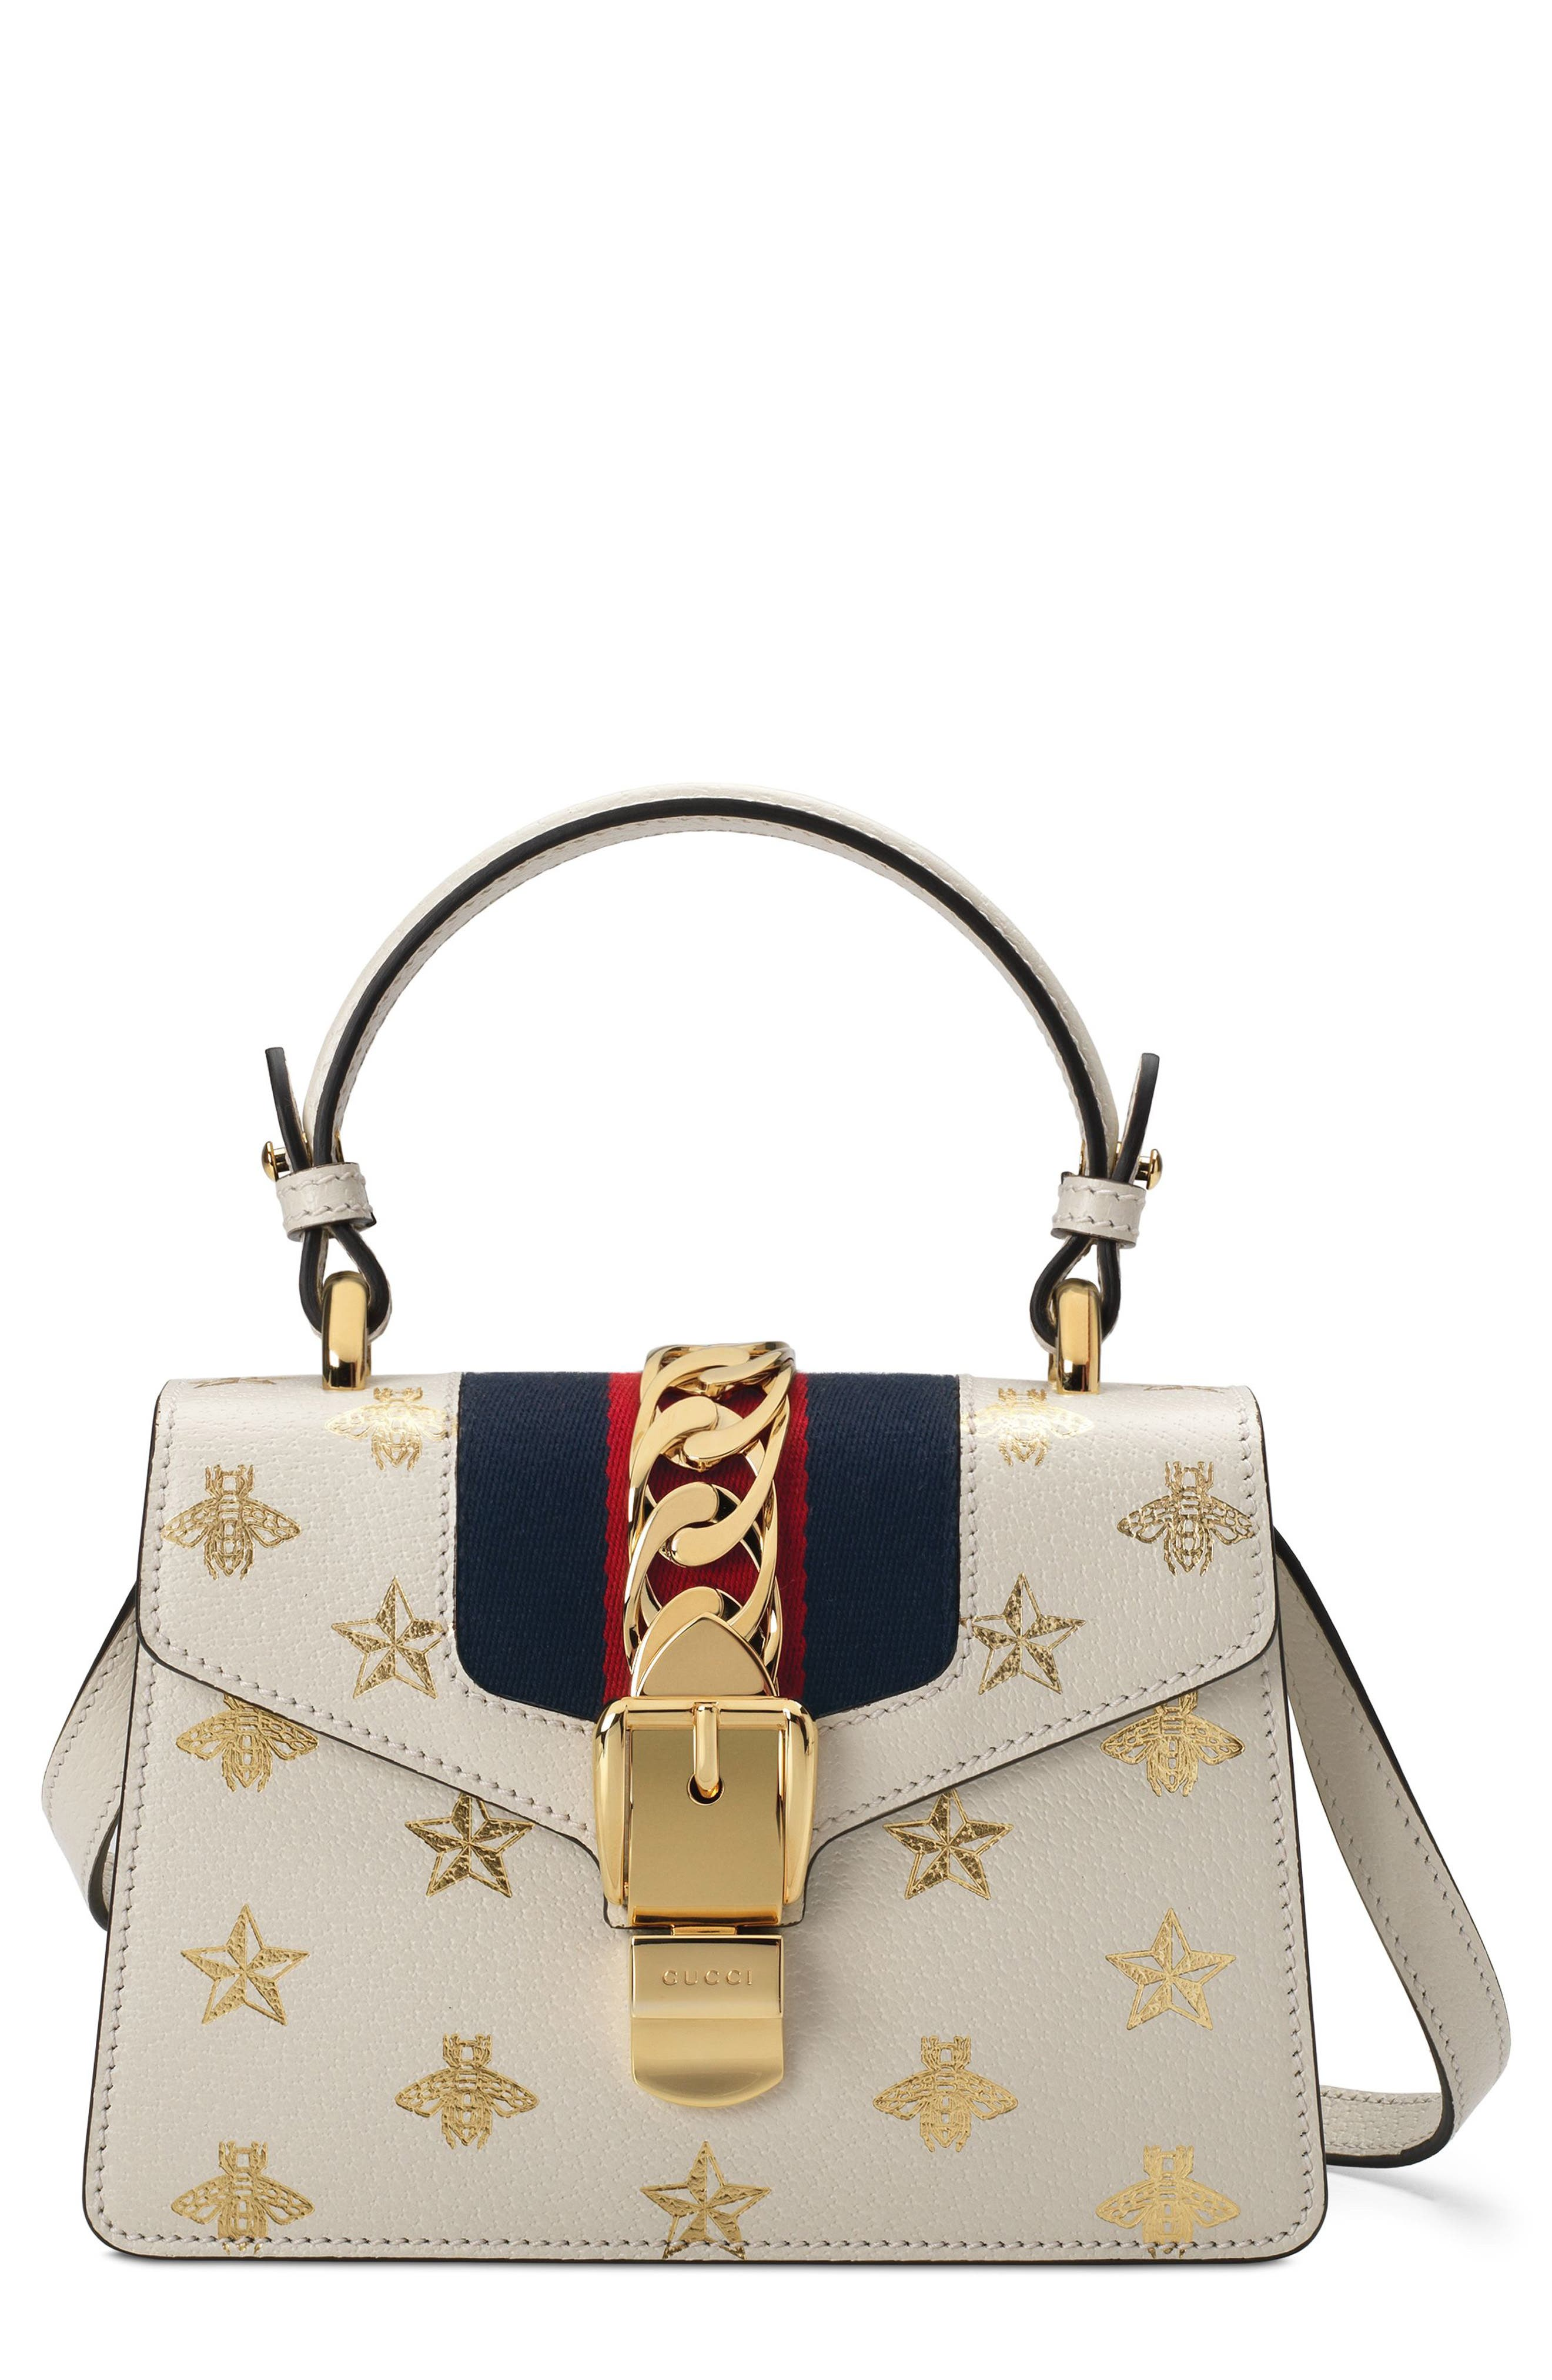 Small Sylvie Top Handle Leather Shoulder Bag,                             Main thumbnail 1, color,                             MYSTIC WHITE/ ORO/ BLUE/ RED